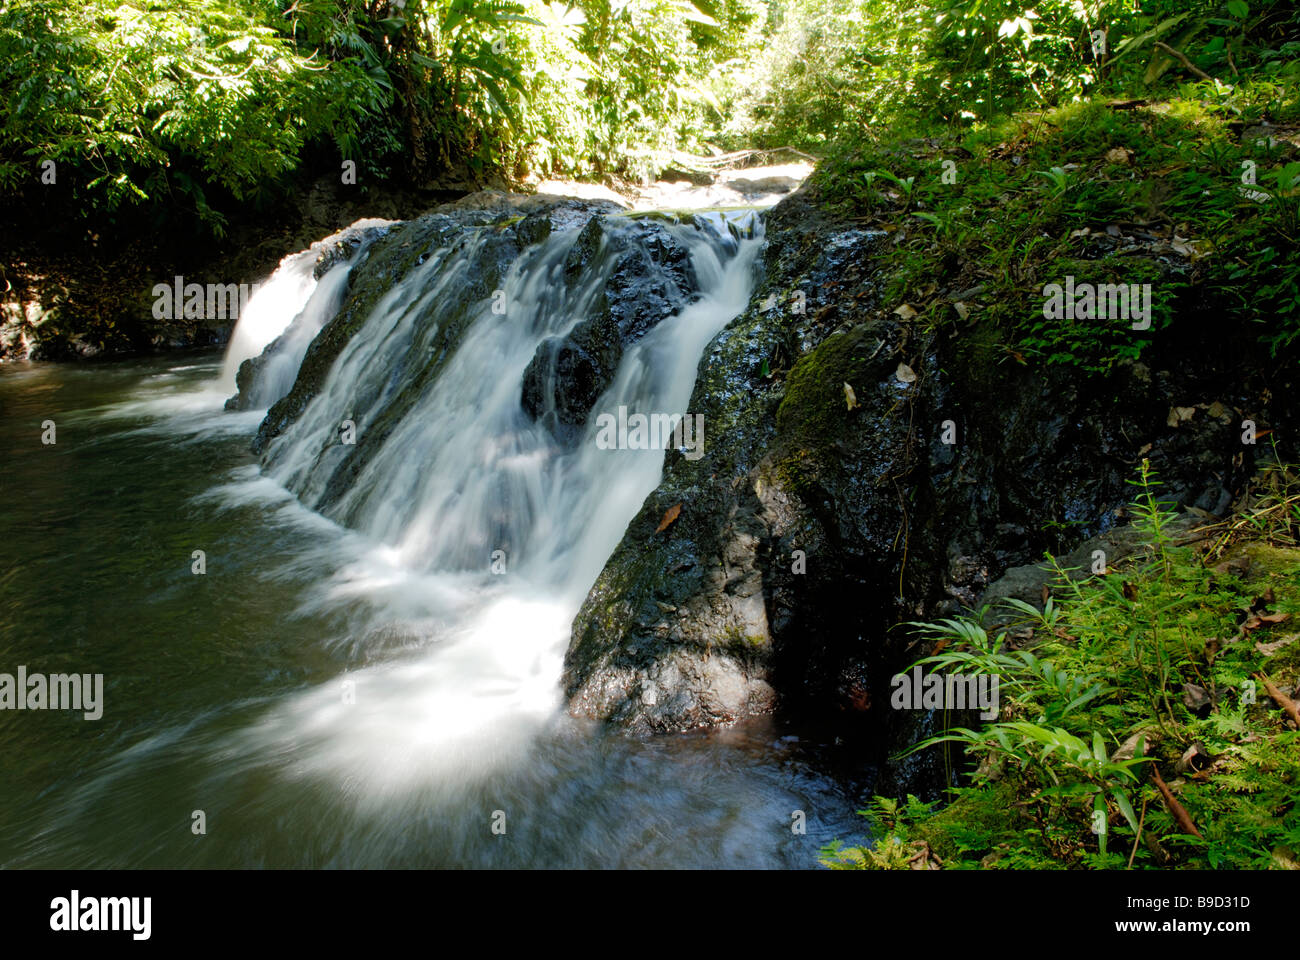 Waterfall, Corcovado National Park - Stock Image